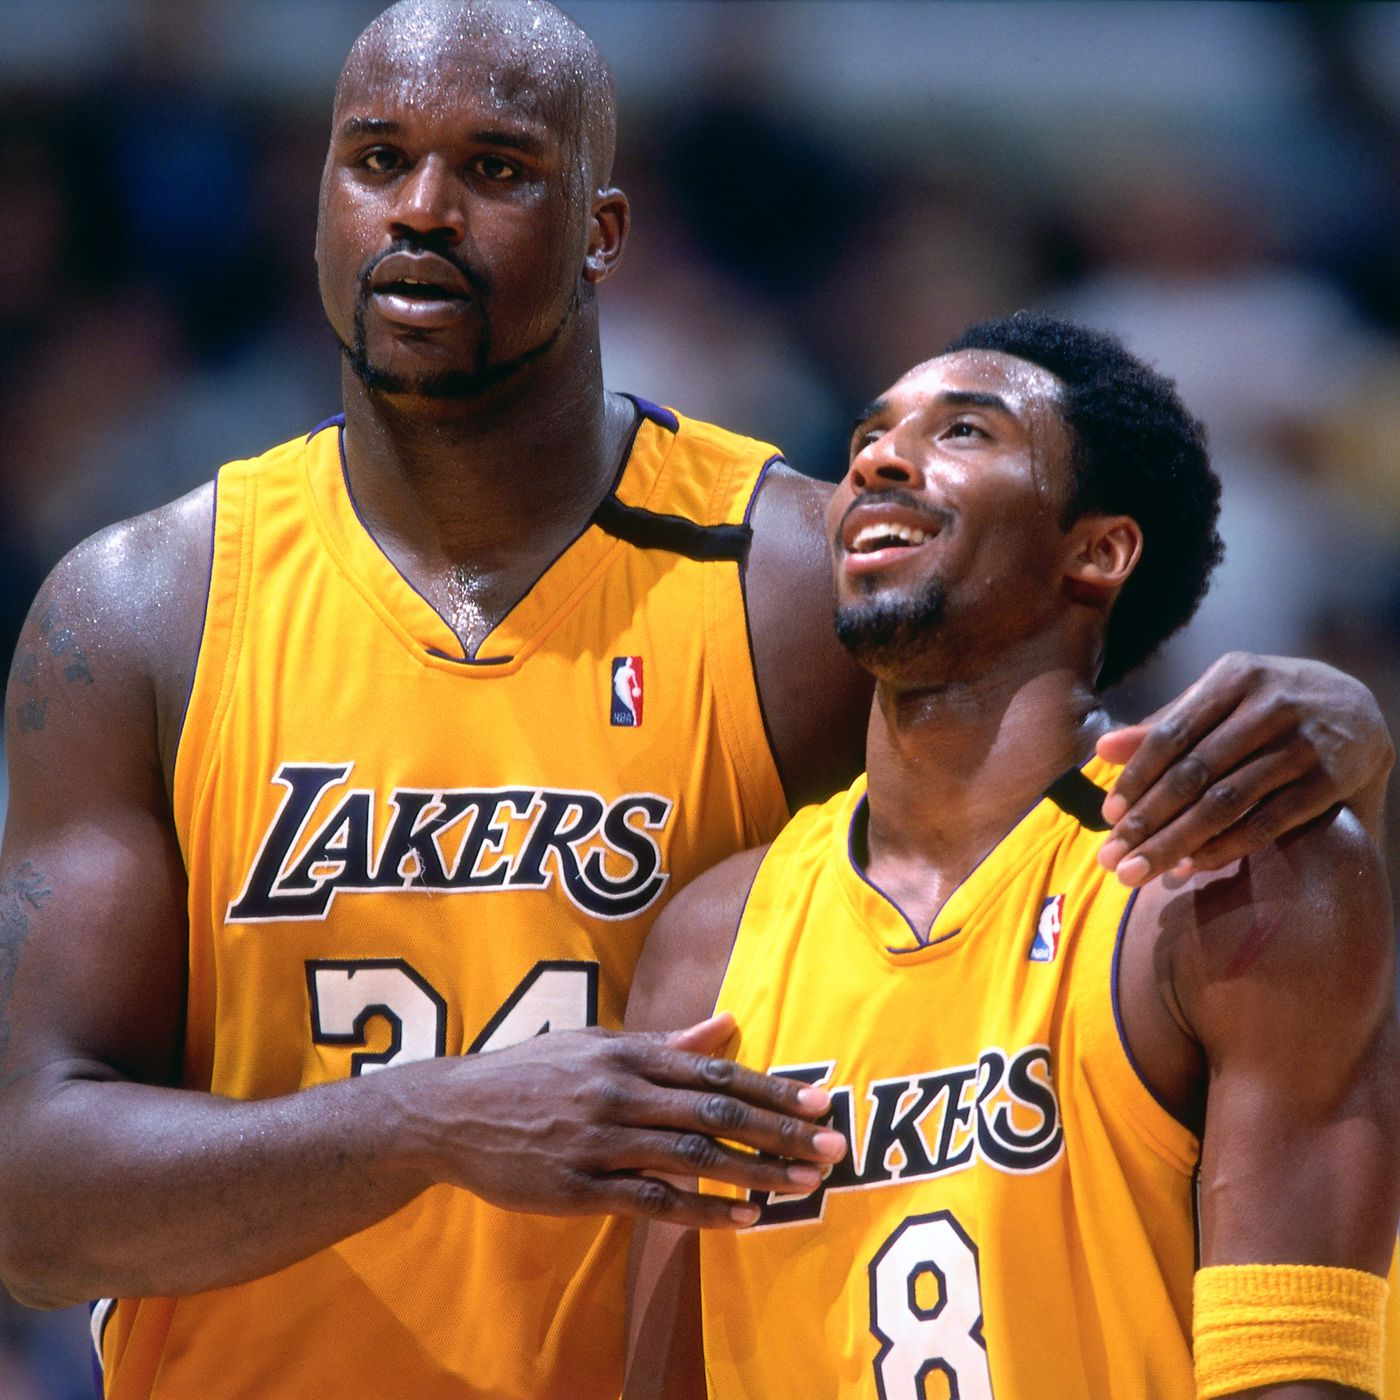 Kobe Bryant in a game during his rookie season, stopped passing the ball to Shaq after he kept missing his free throws.